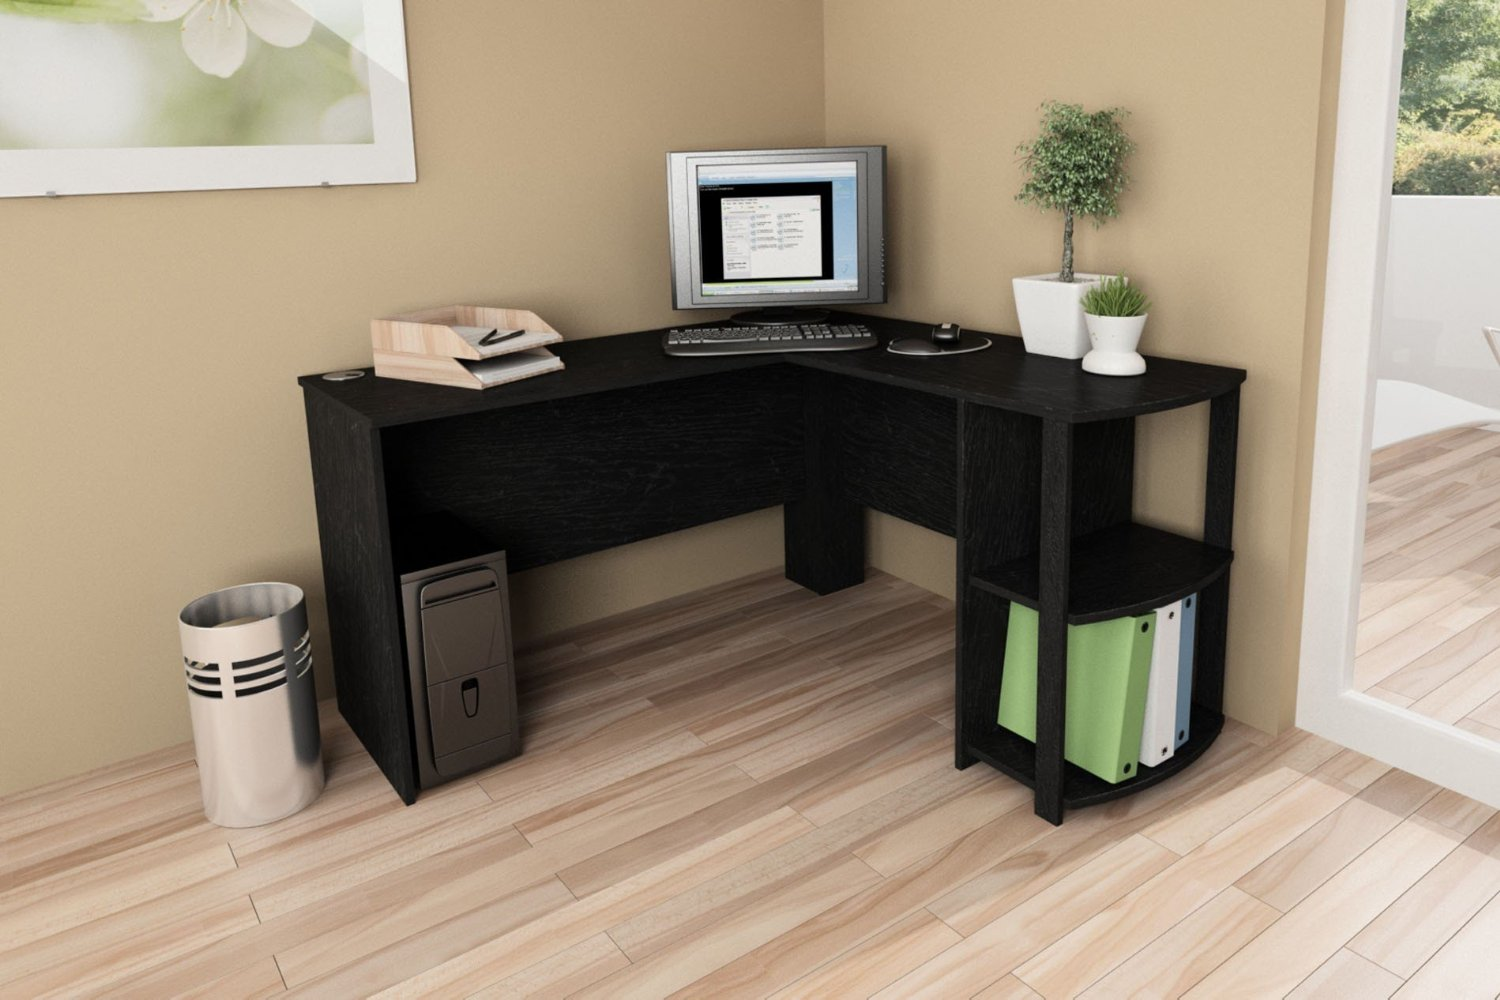 black l shaped desks are always an extremely handsome option and are probably the most commonly purchased color desk for the home office because of this